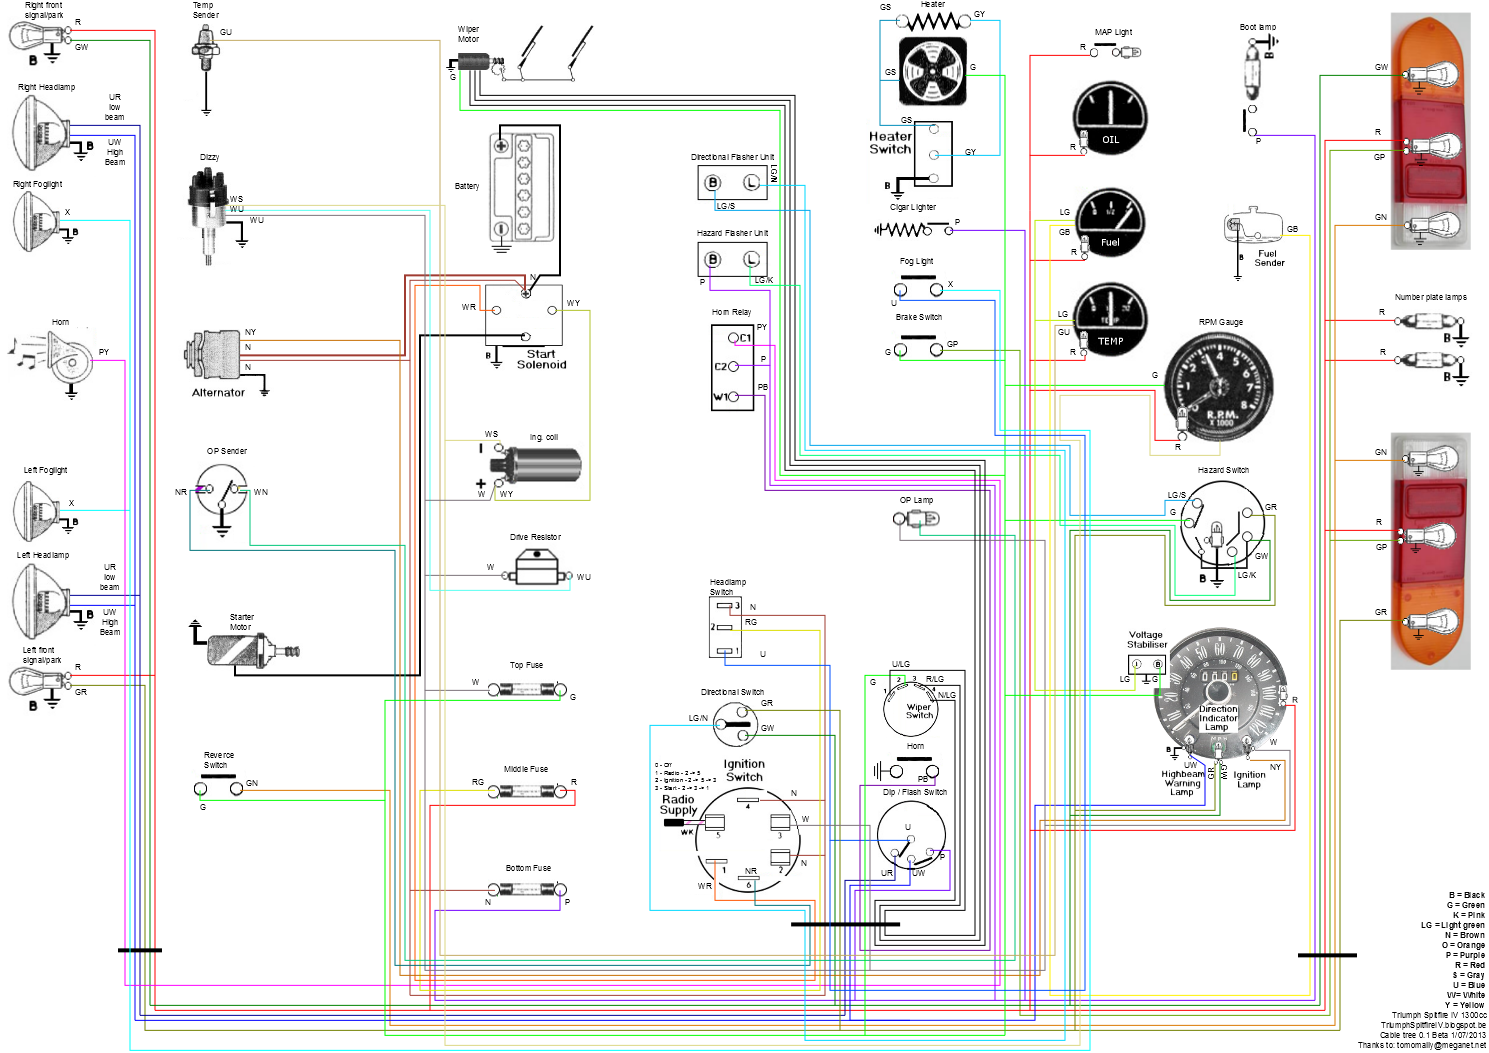 spitfire iv wiring diagram morris minor wiring diagram wiring diagram simonand morris minor alternator wiring diagram at bayanpartner.co